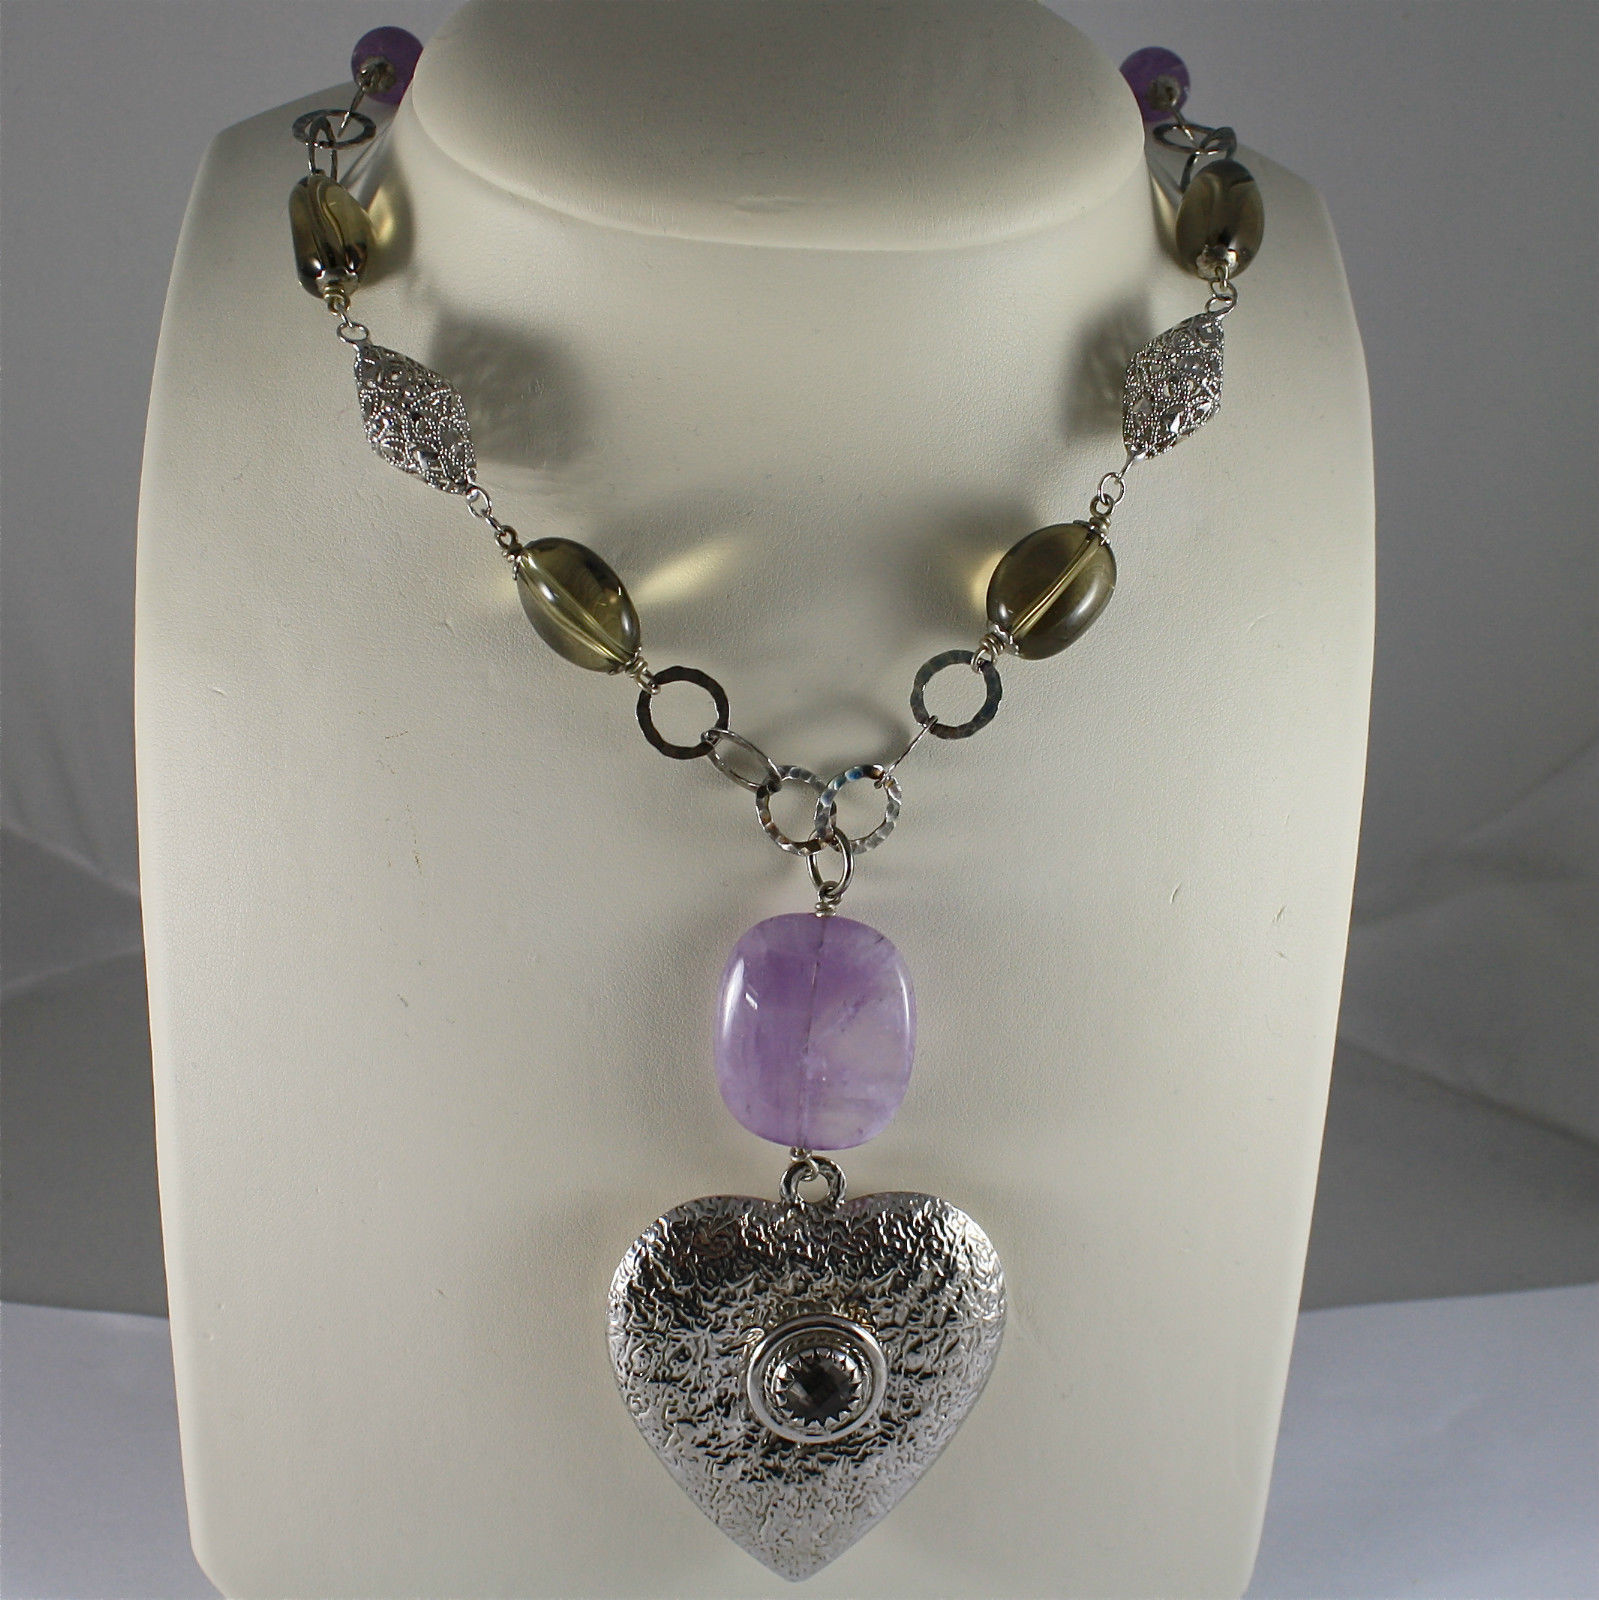 .925 SILVER RHODIUM NECKLACE, AMETHYST, SMOKED QUARTZ, HEART PENDANT, 23,62 In.